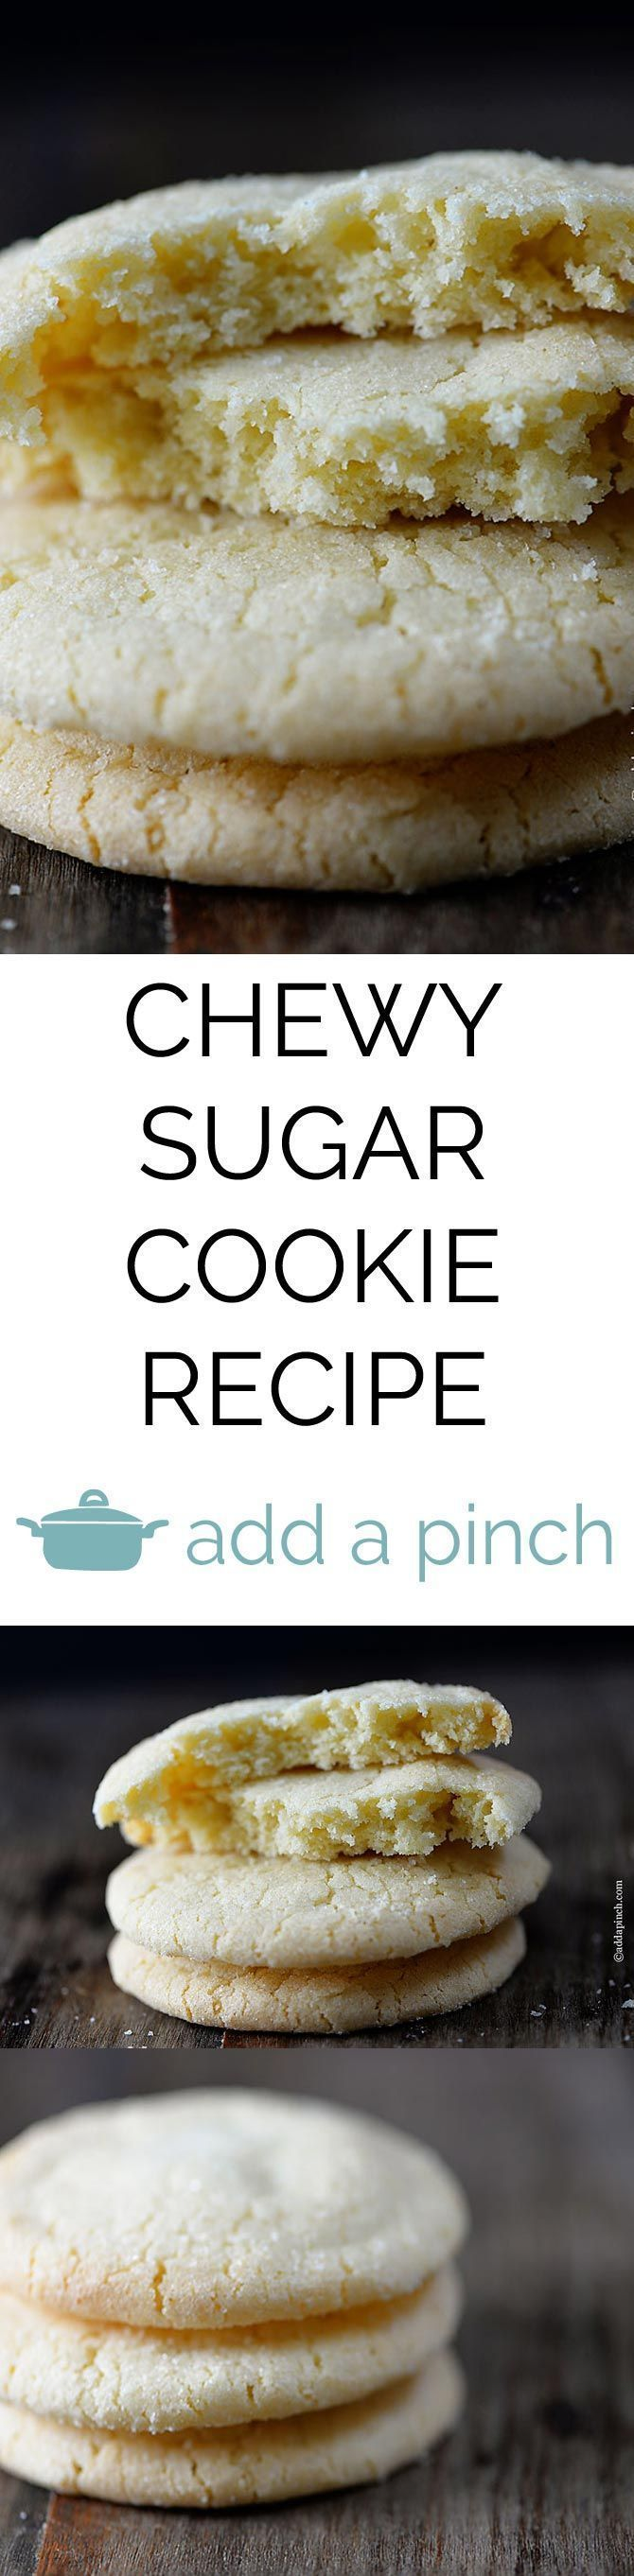 2278 best Add a Pinch Recipes images on Pinterest ...